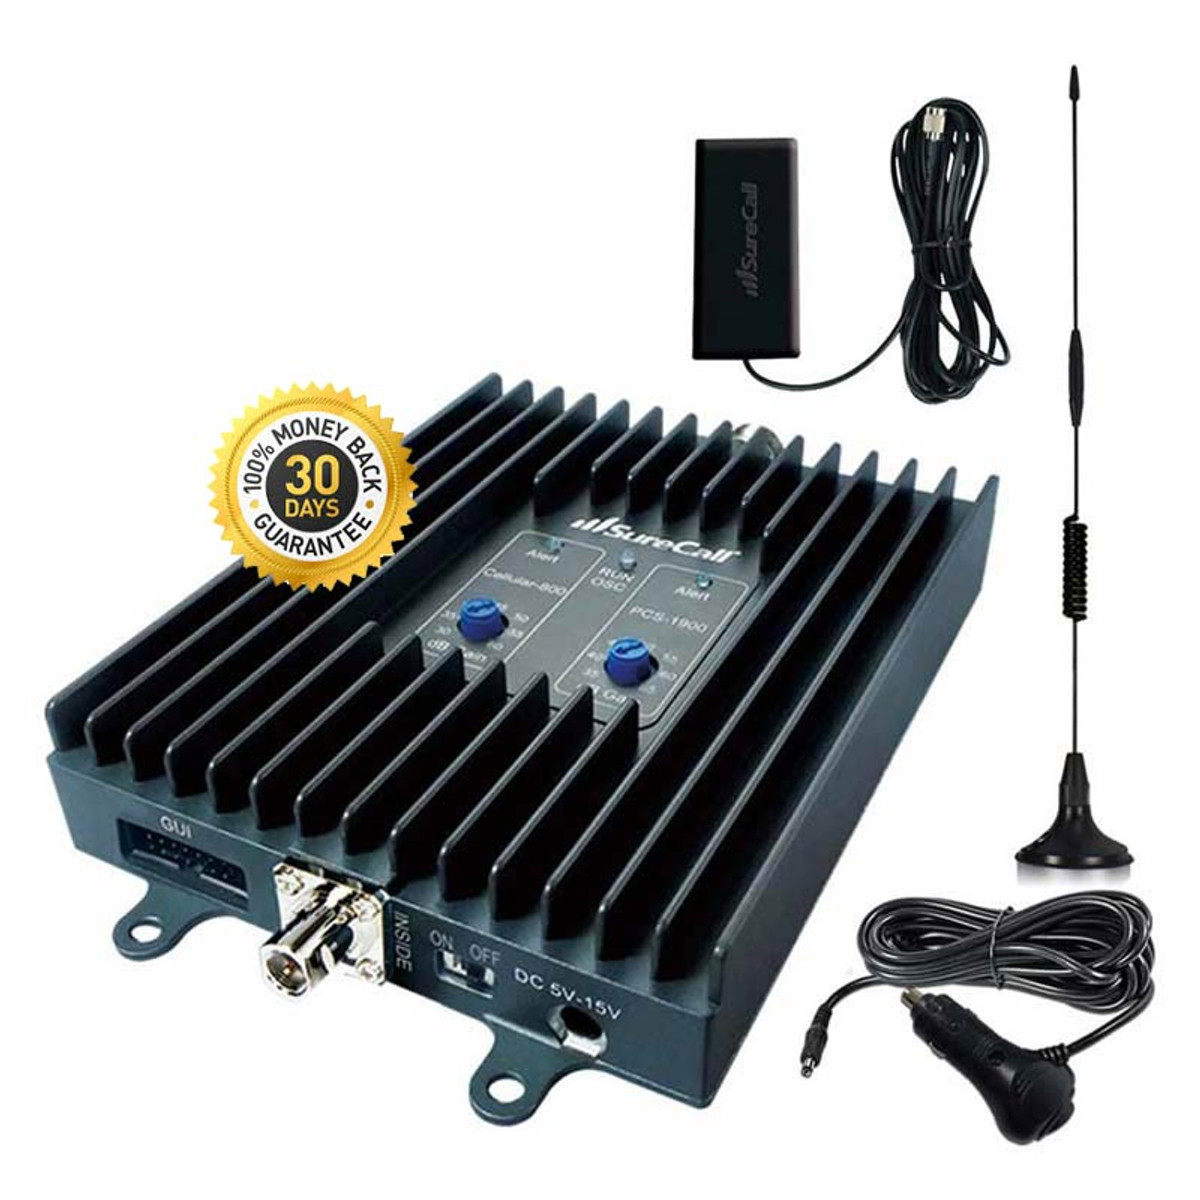 SureCall Flex2Go 3G Cell Phone Signal Booster (SC-DualM-50-KIT) | Complete Kit